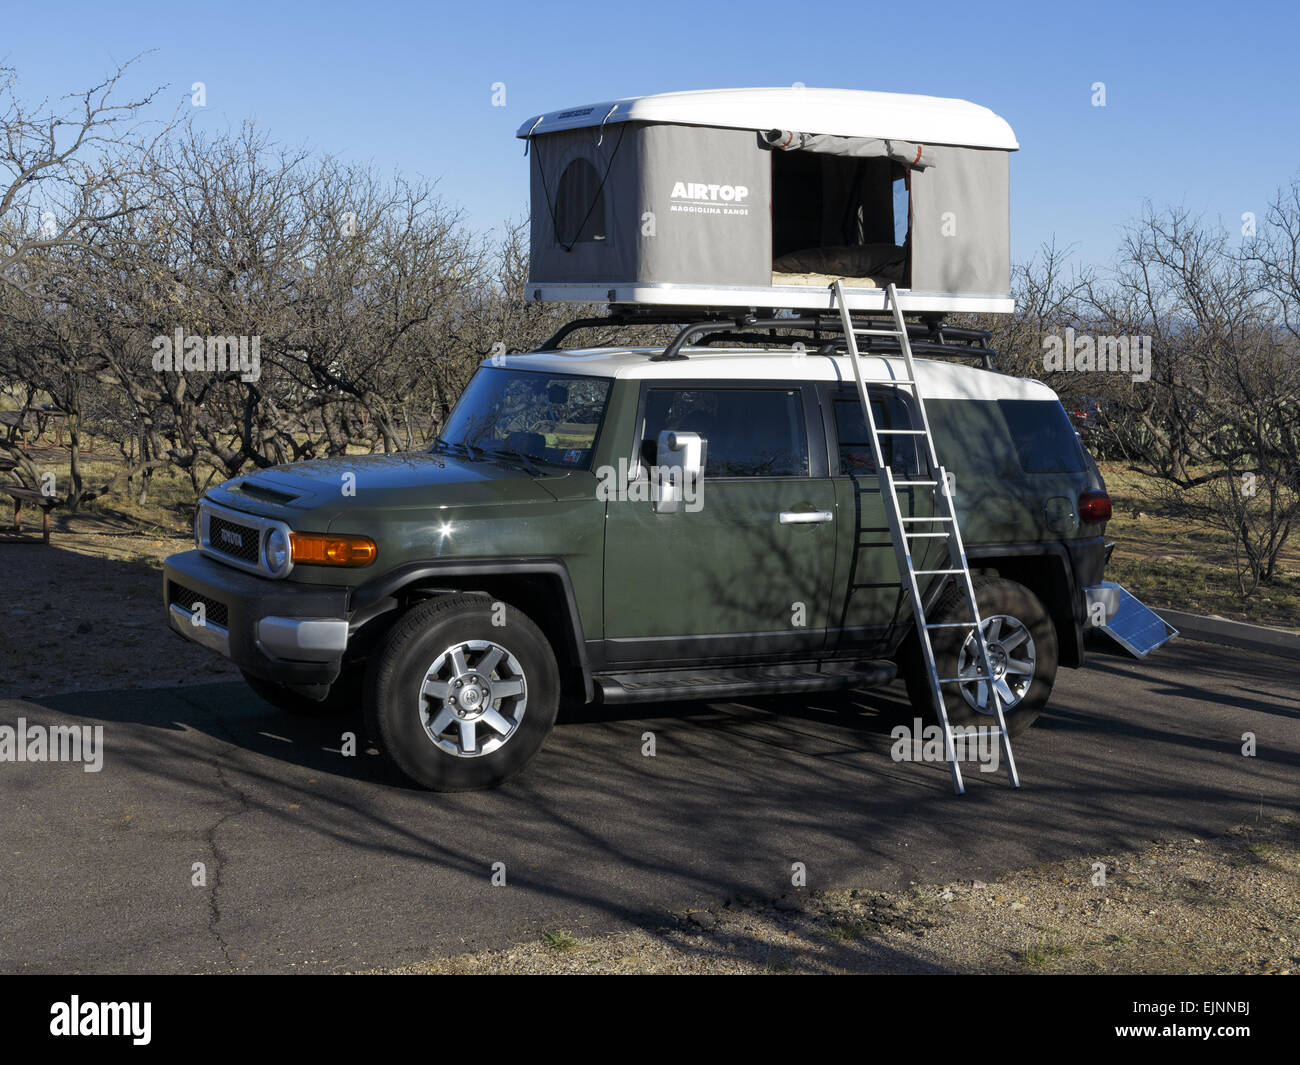 Airtop Maggiolina roof tent on top of a Toyota FJ Cruiser. Arizona united states 2015 & Airtop Maggiolina roof tent on top of a Toyota FJ Cruiser. Arizona ...